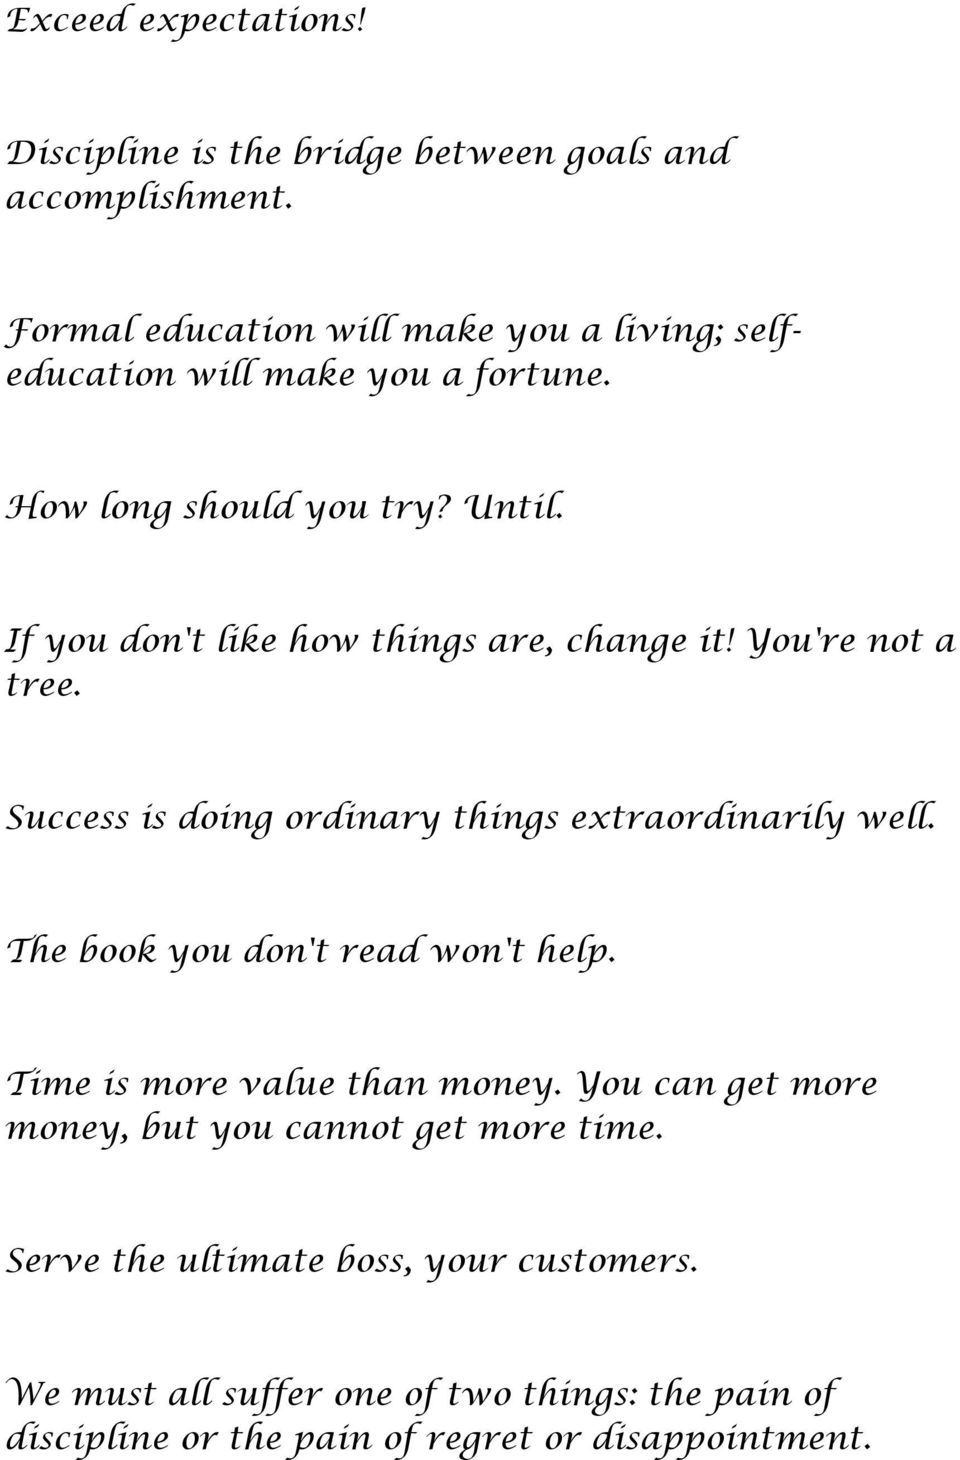 If you don't like how things are, change it! You're not a tree. Success is doing ordinary things extraordinarily well.